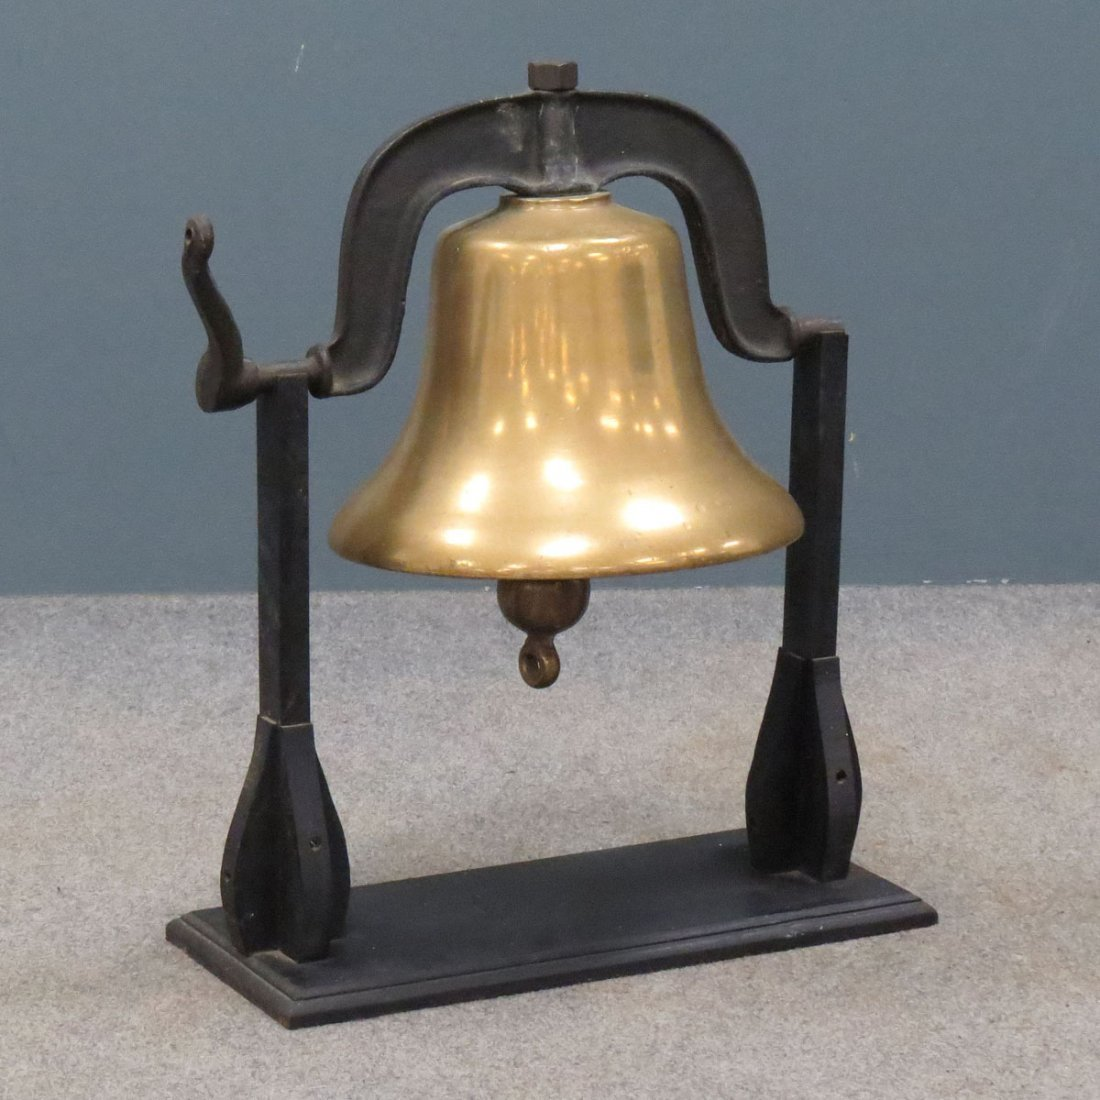 BRONZE LOCOMOTIVE BELL WITH STAND